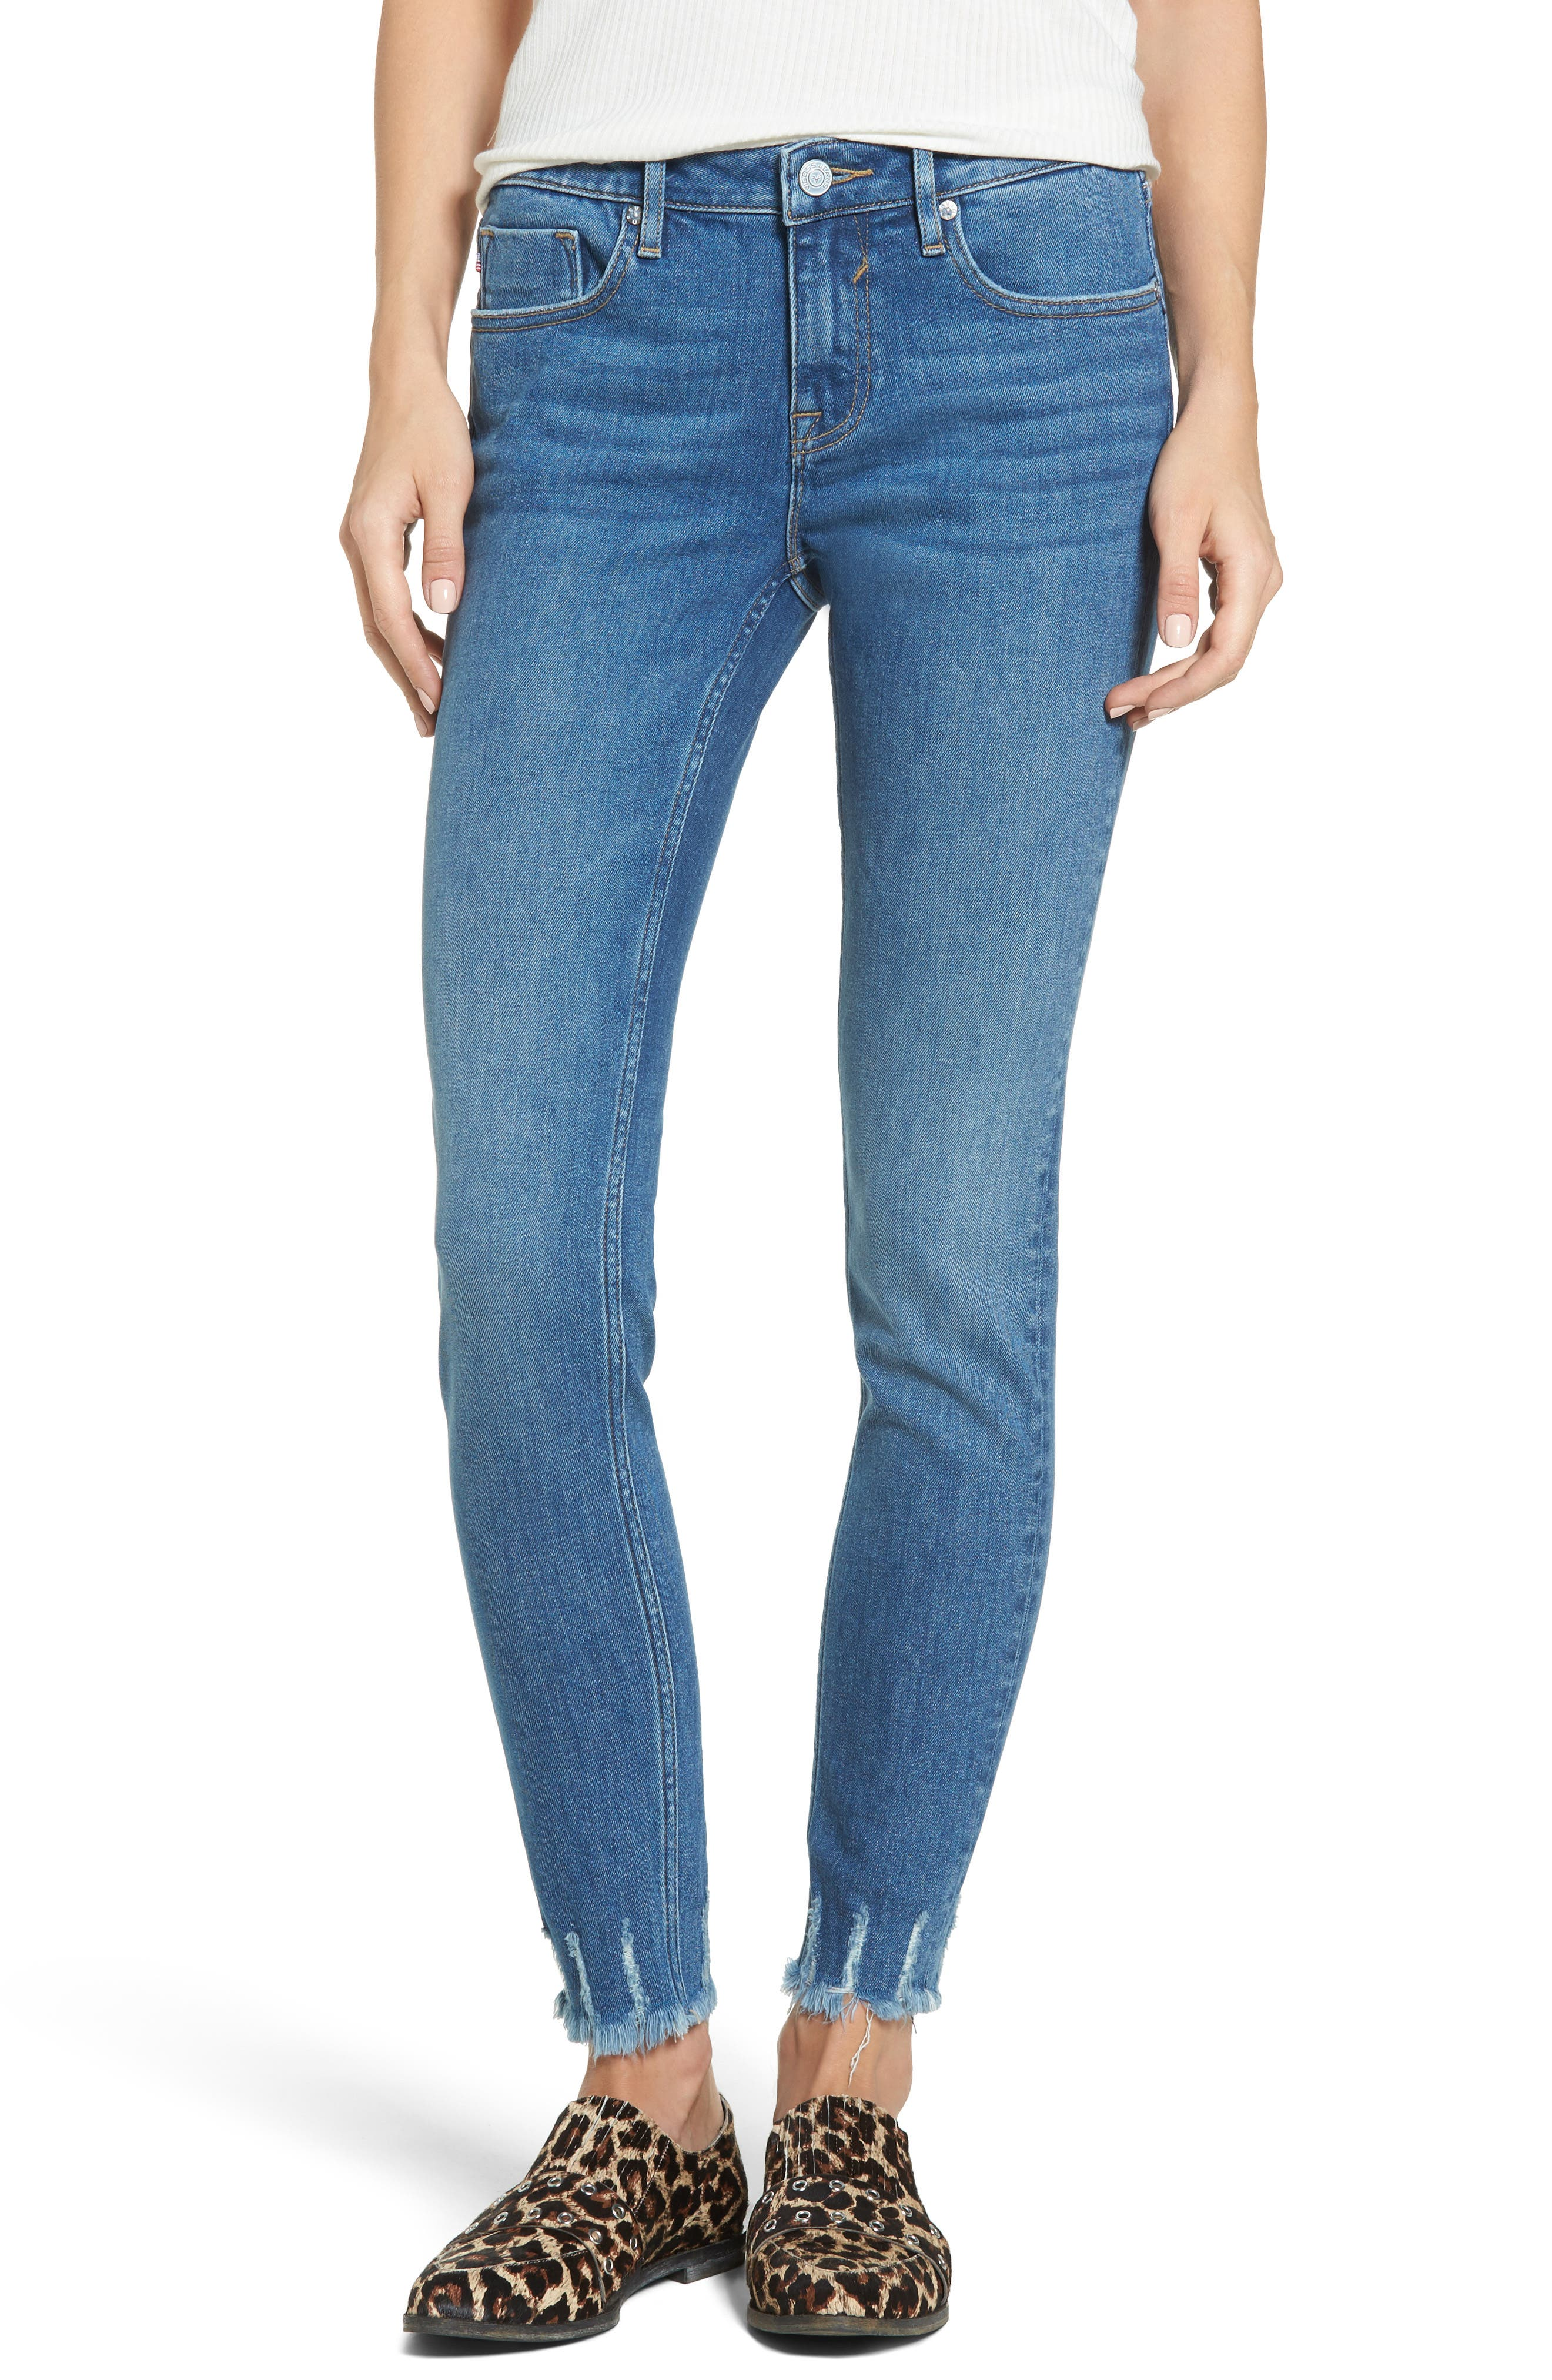 Jagger Skinny Jeans,                         Main,                         color, 426